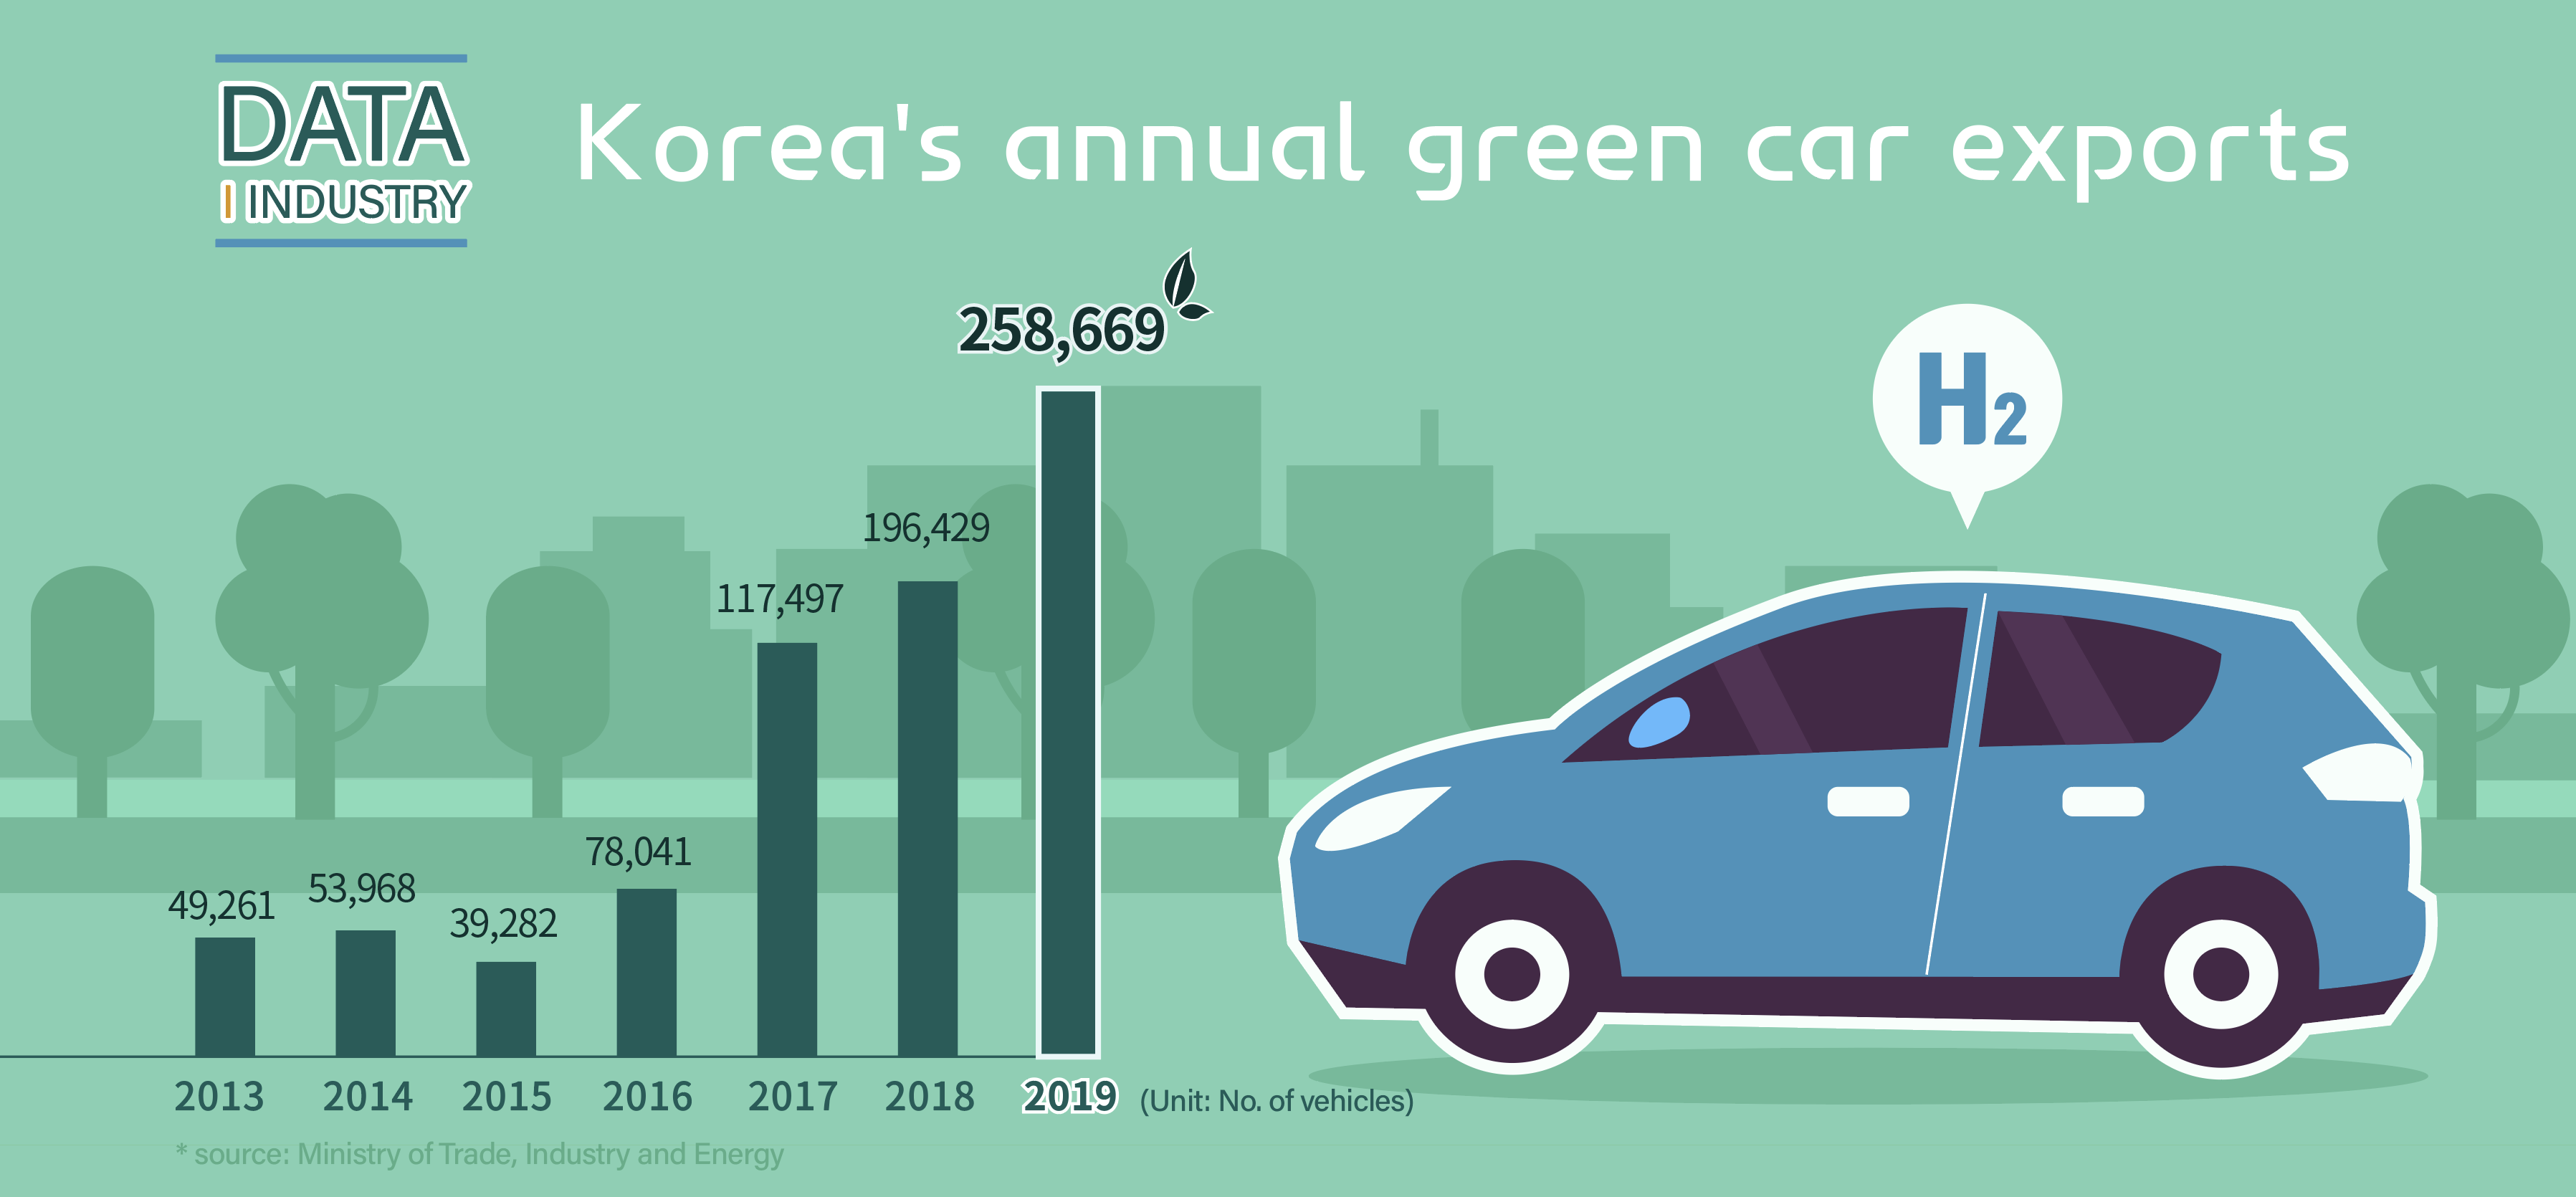 Korea's green car exports hit record high in 2019 Image 0